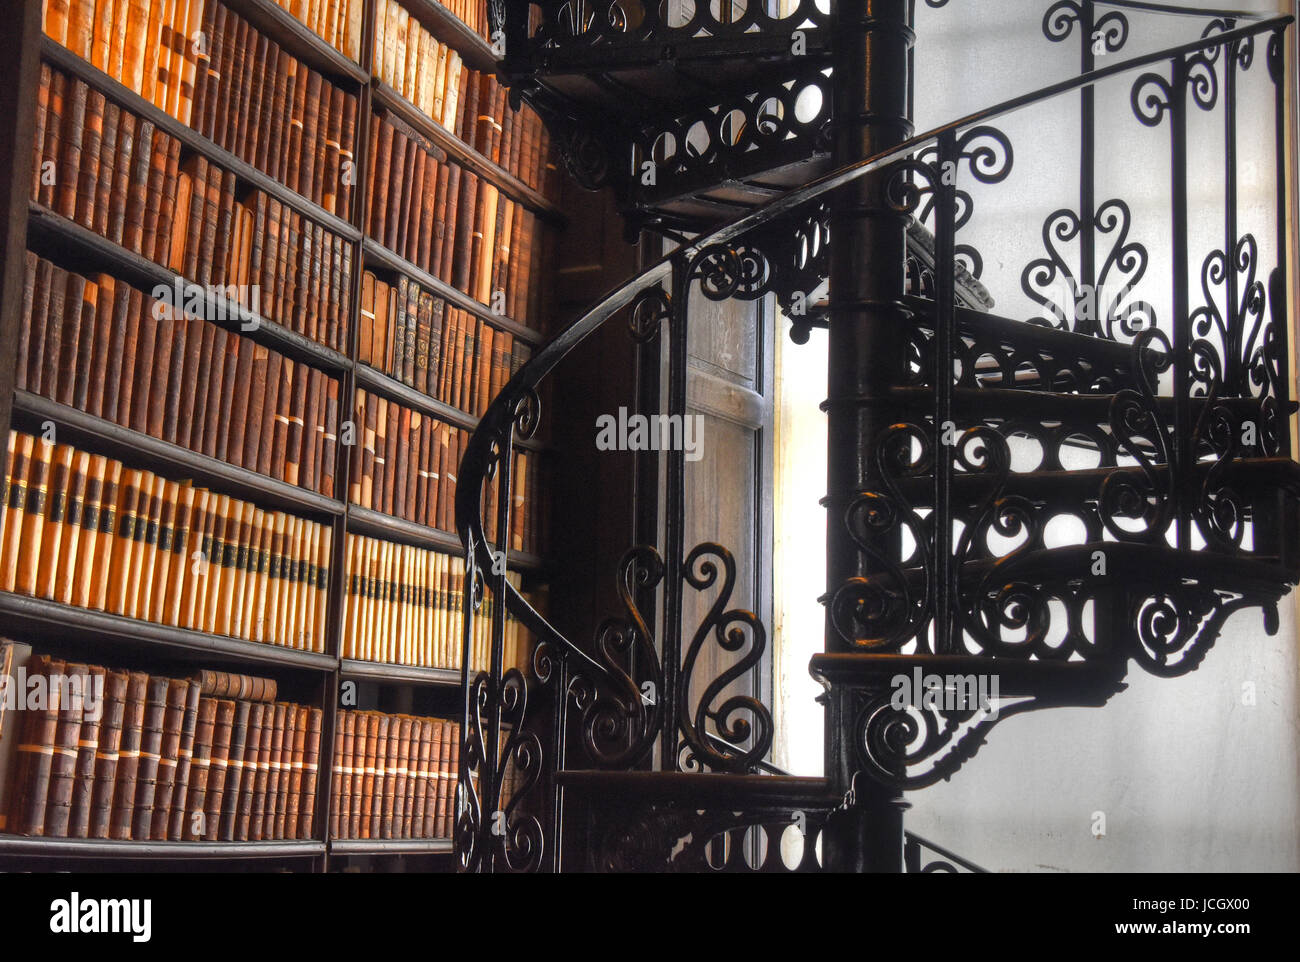 Dublin, Ireland - May 30, 2017: The Long Room in the Old Library at Trinity College Dublin. - Stock Image